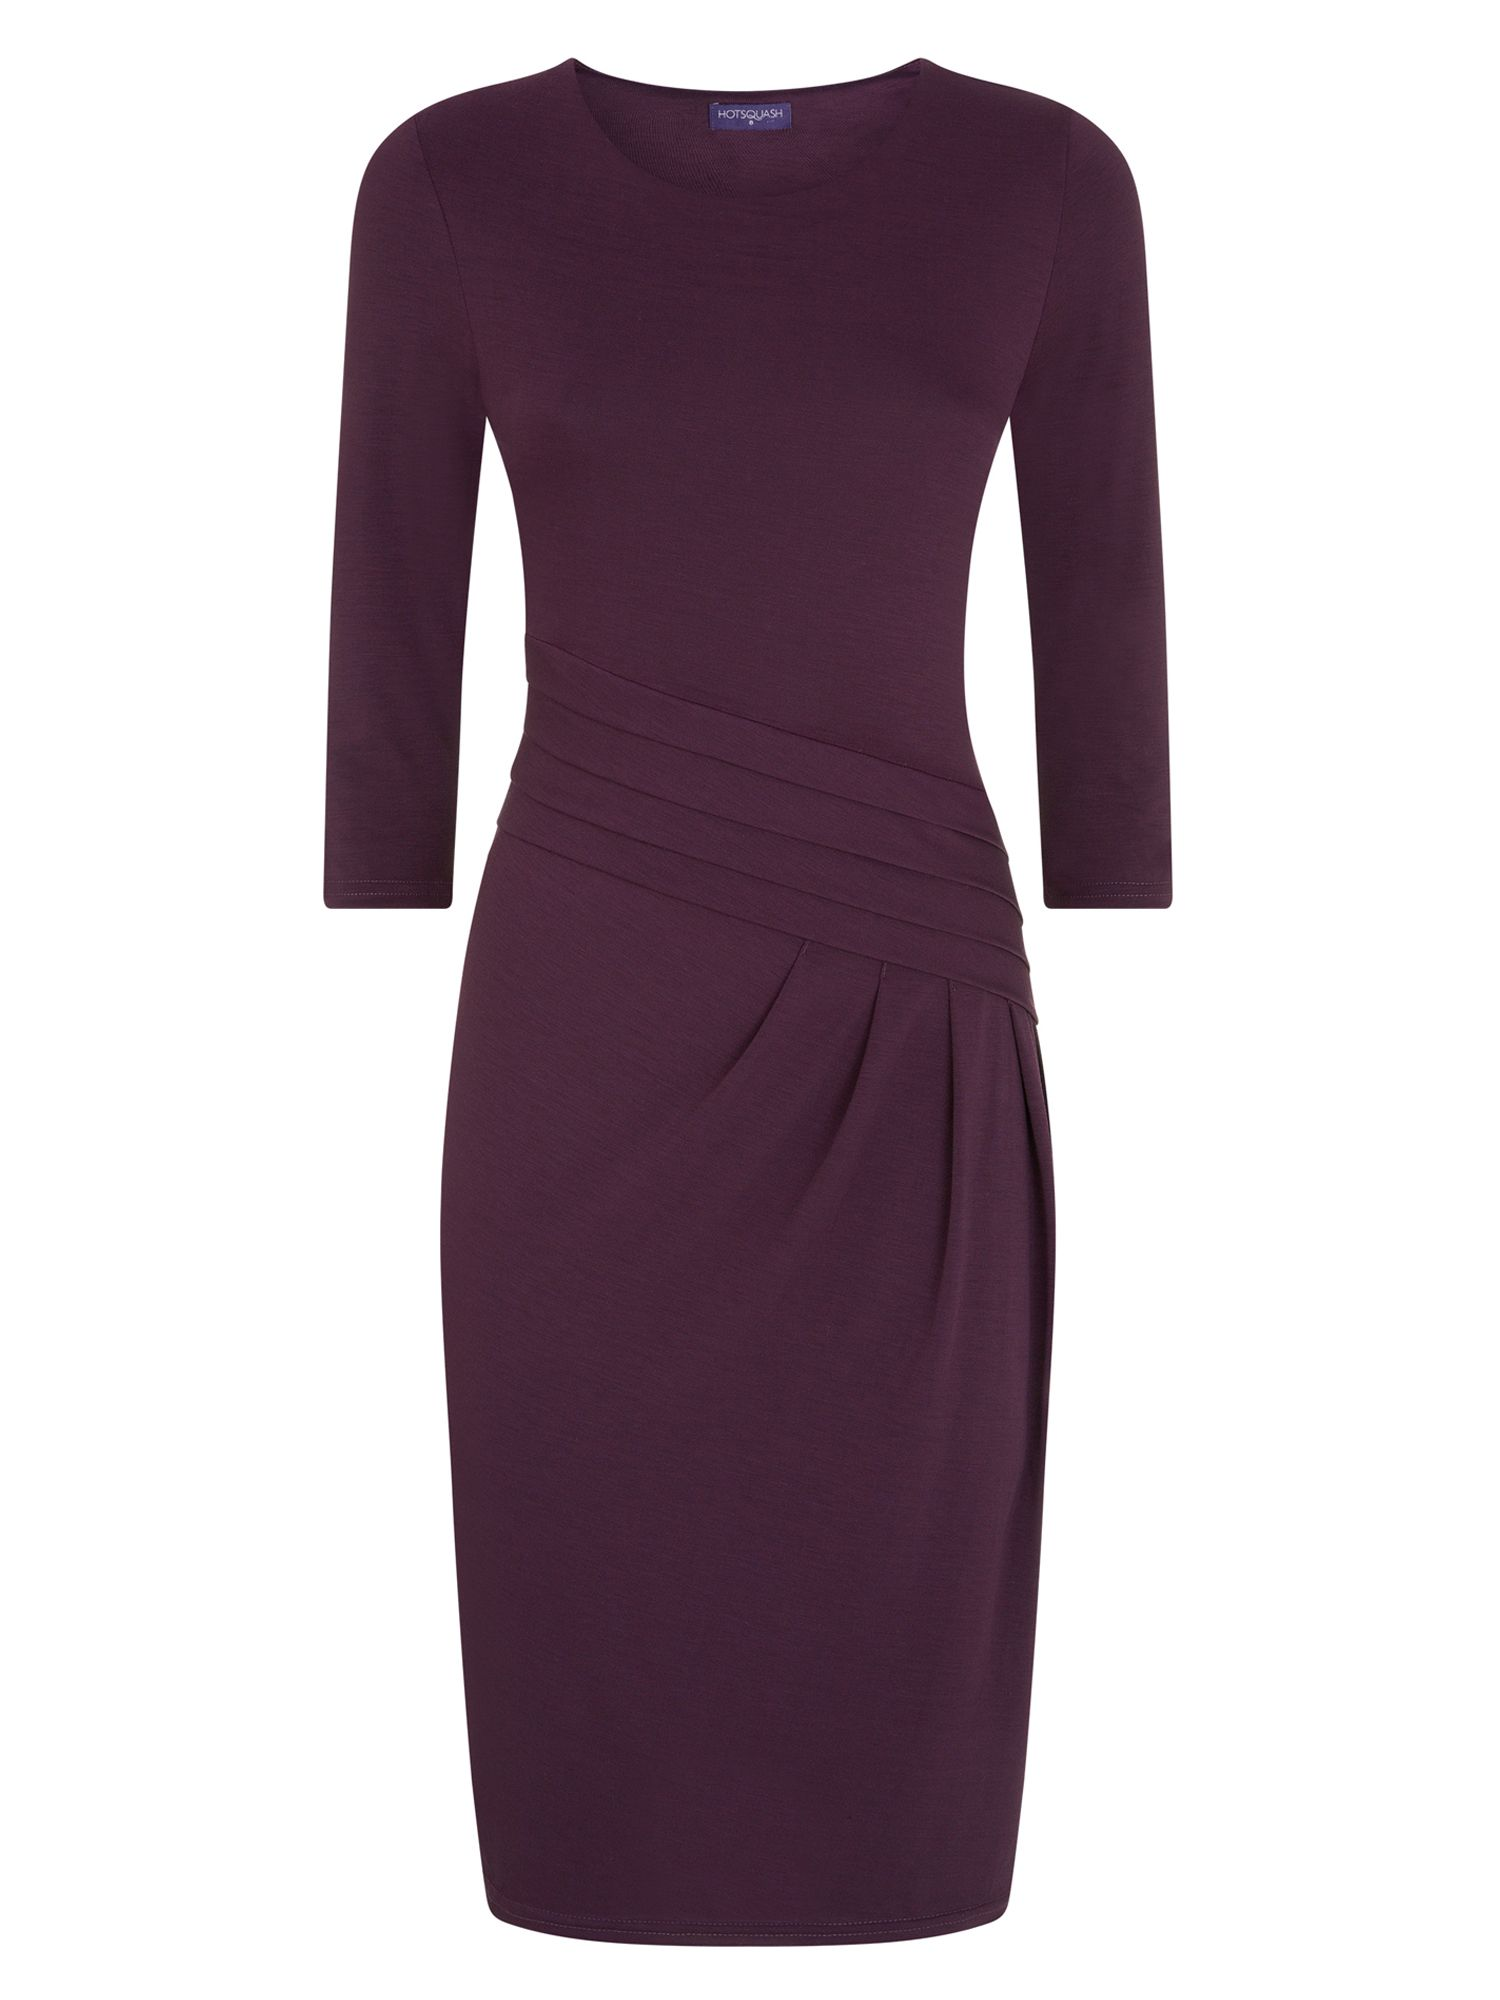 HotSquash Long Sleeved Knee length Dress, Damson